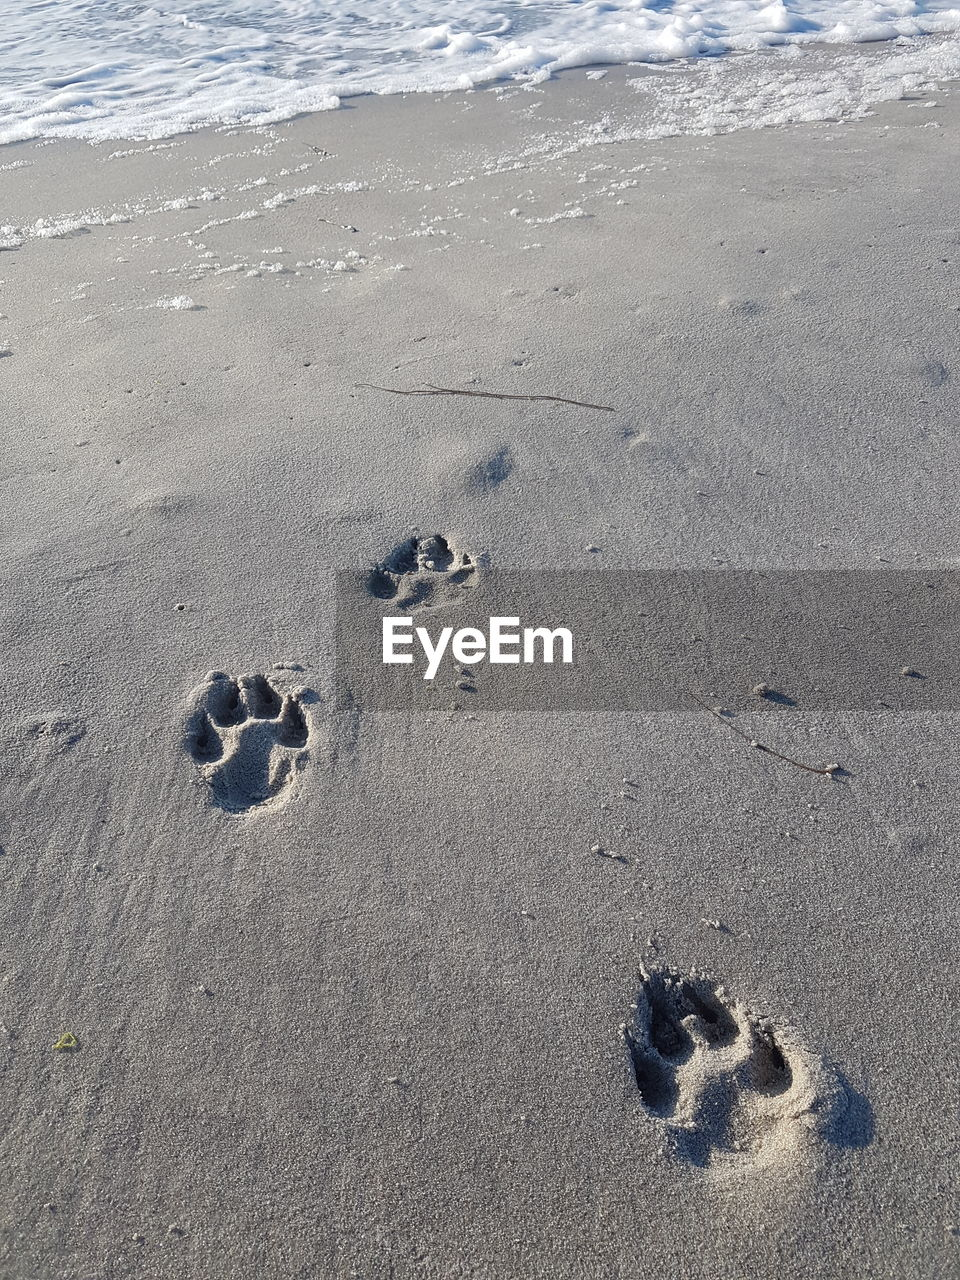 land, beach, sand, high angle view, footprint, nature, paw print, day, no people, print, track - imprint, sea, water, animal track, outdoors, absence, animal, tranquility, animal themes